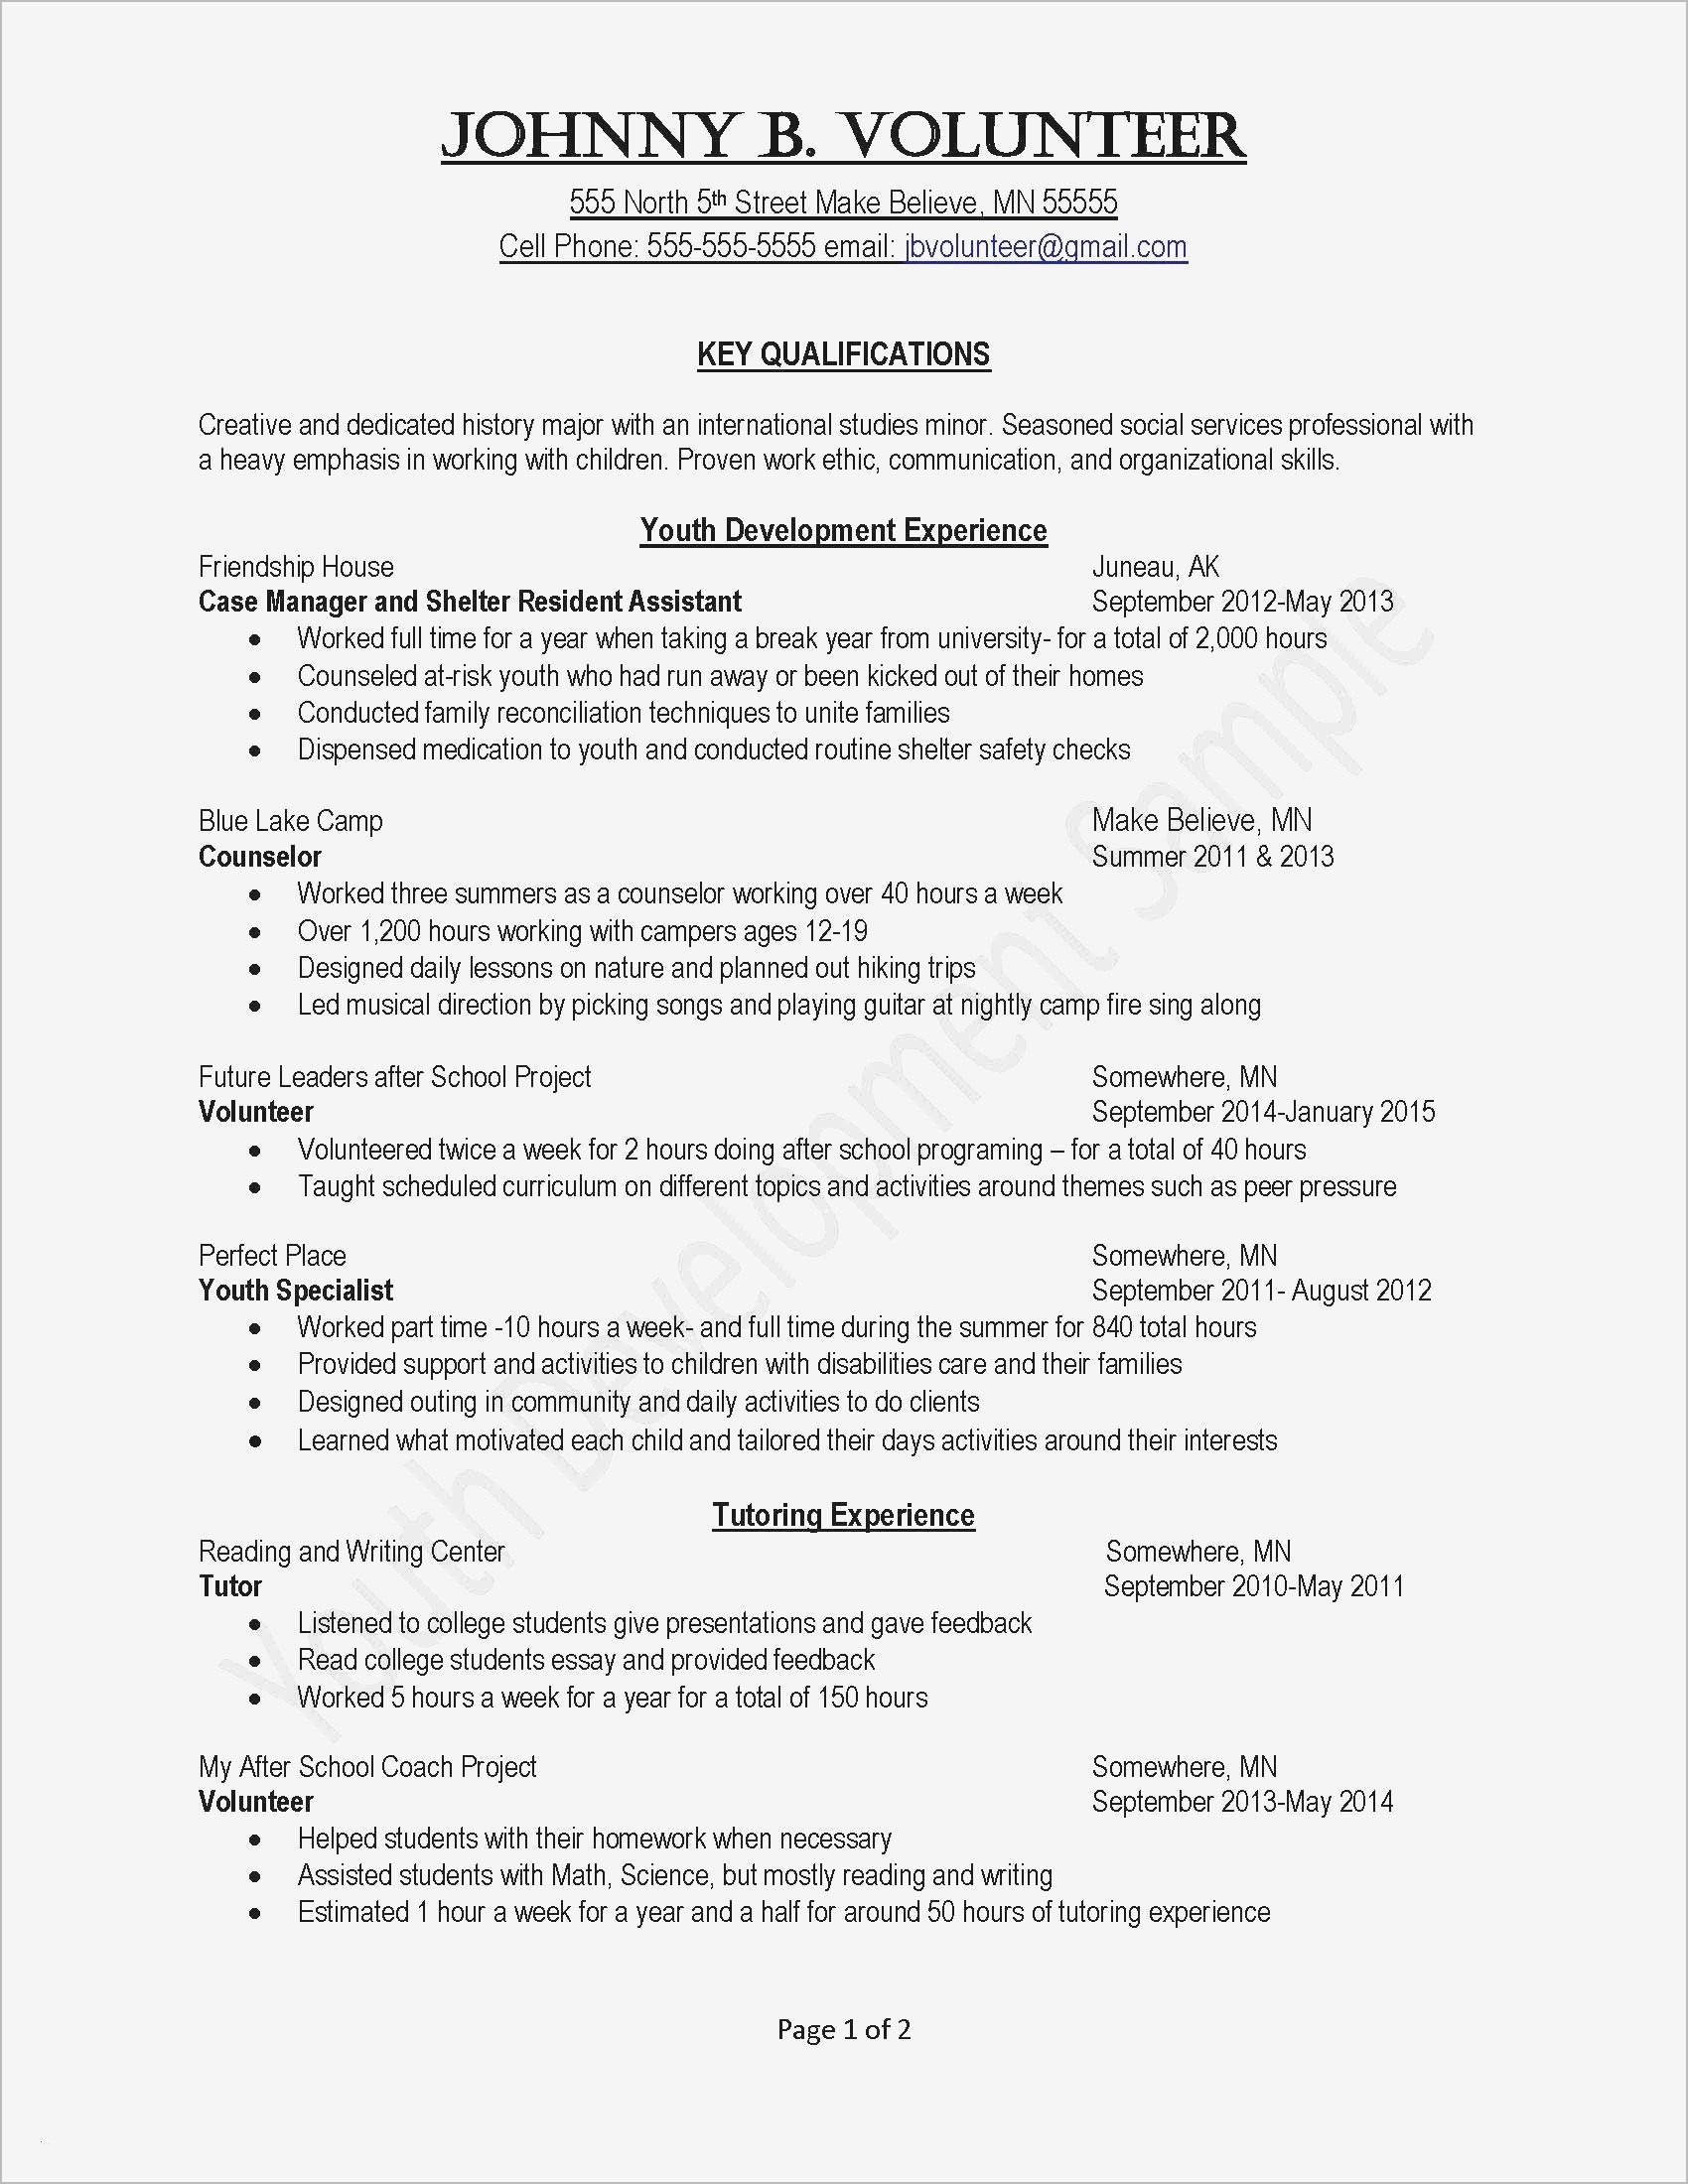 Generic Resume Cover Letter Template - General Maintenance Resume New Job Fer Letter Template Us Copy Od